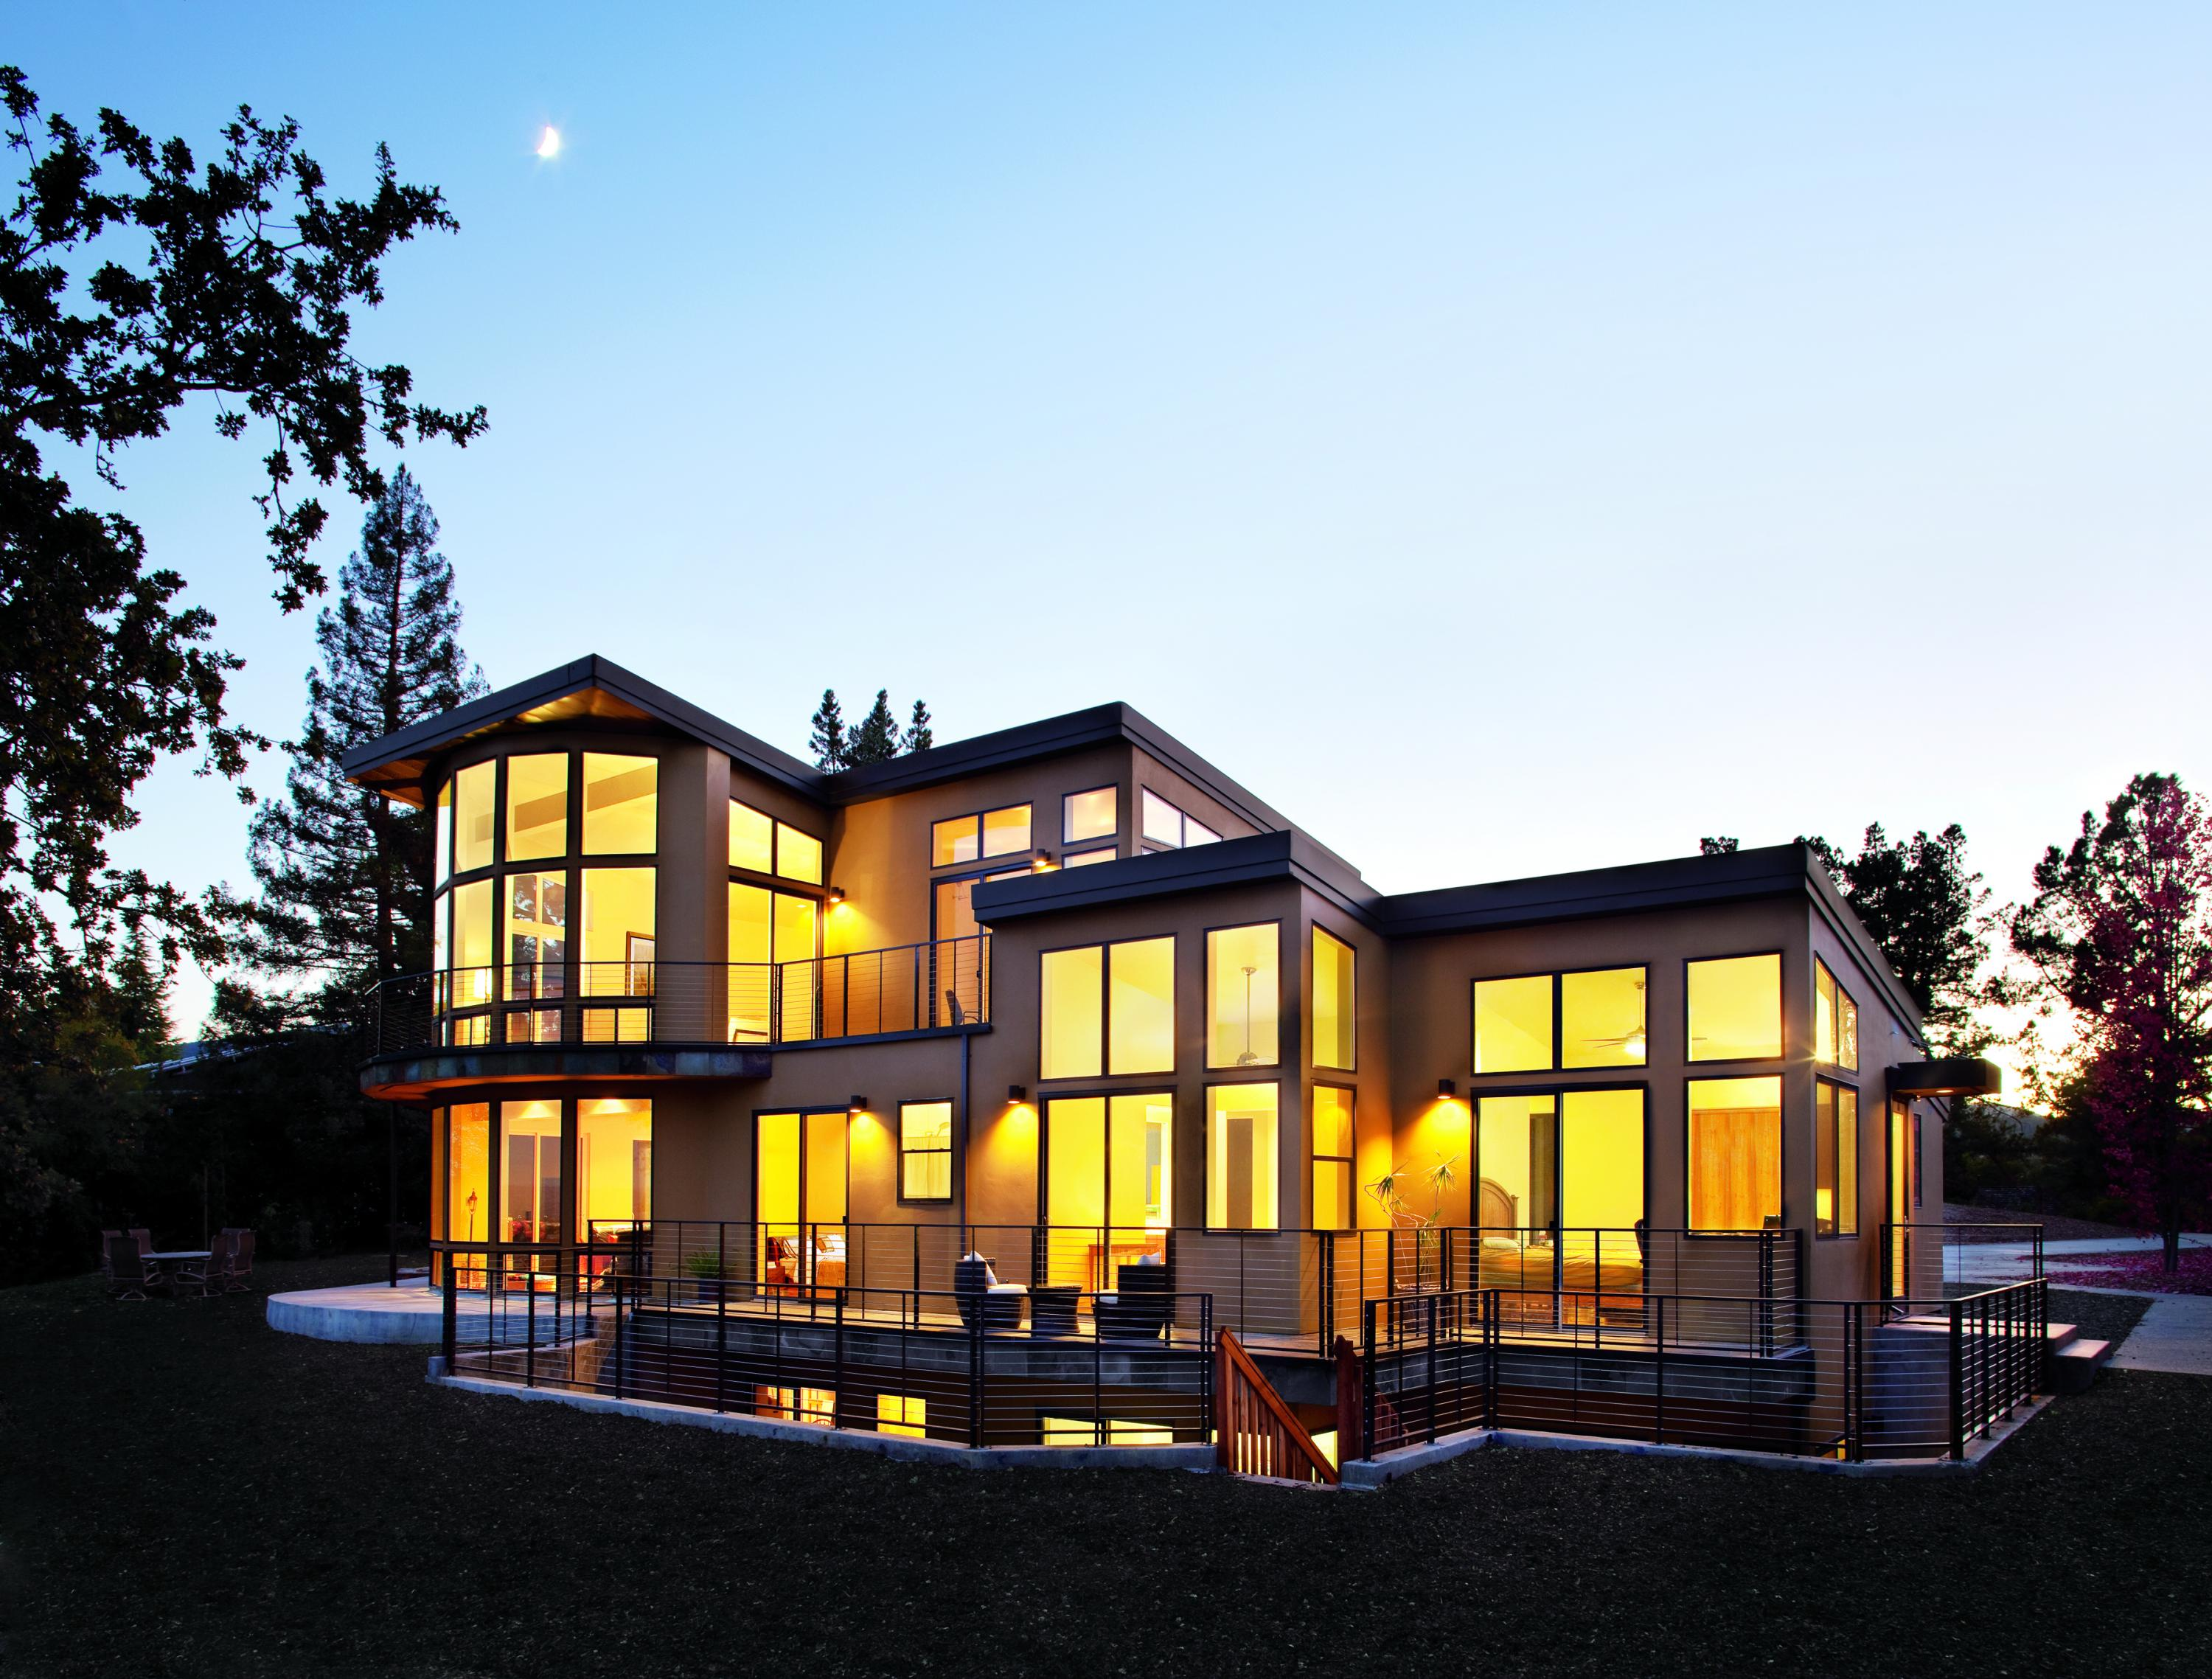 Elegant Remodeling Your Home? Start From The Outside.